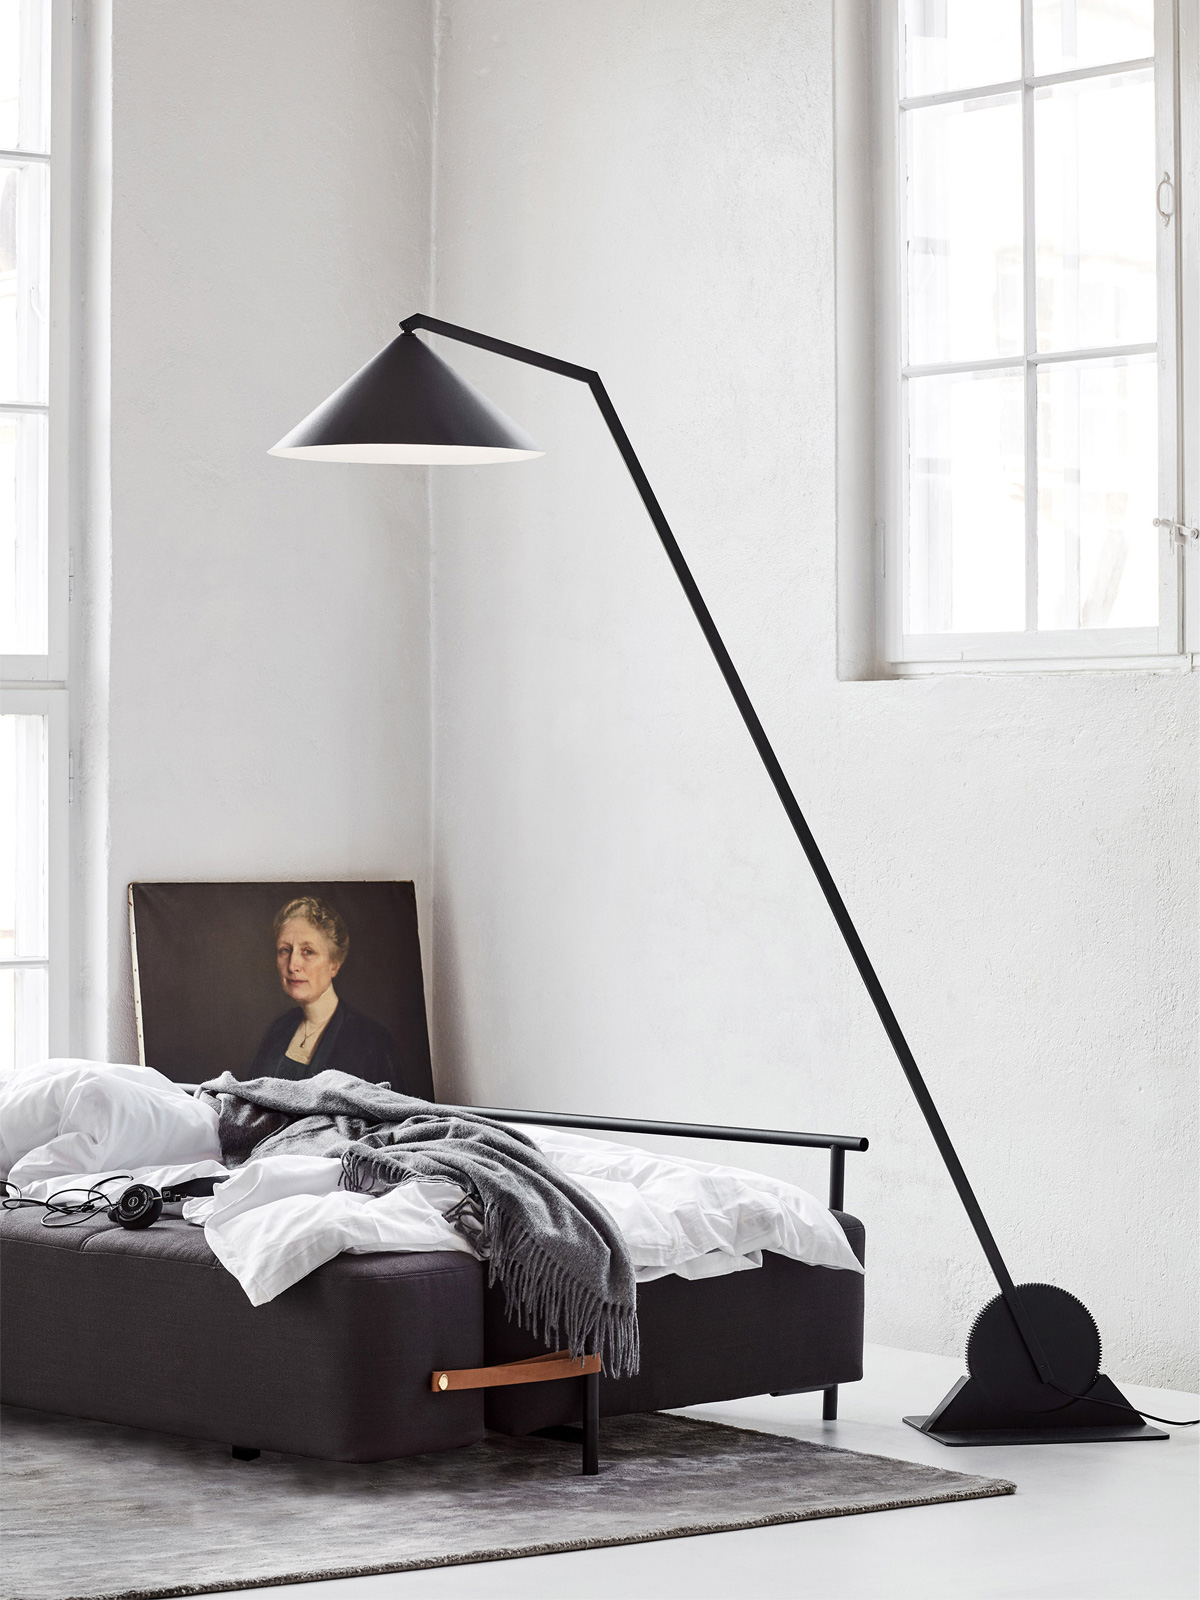 DesignOrt Blog: Grafische Designerleuchten Northern Lighting Gear Floor